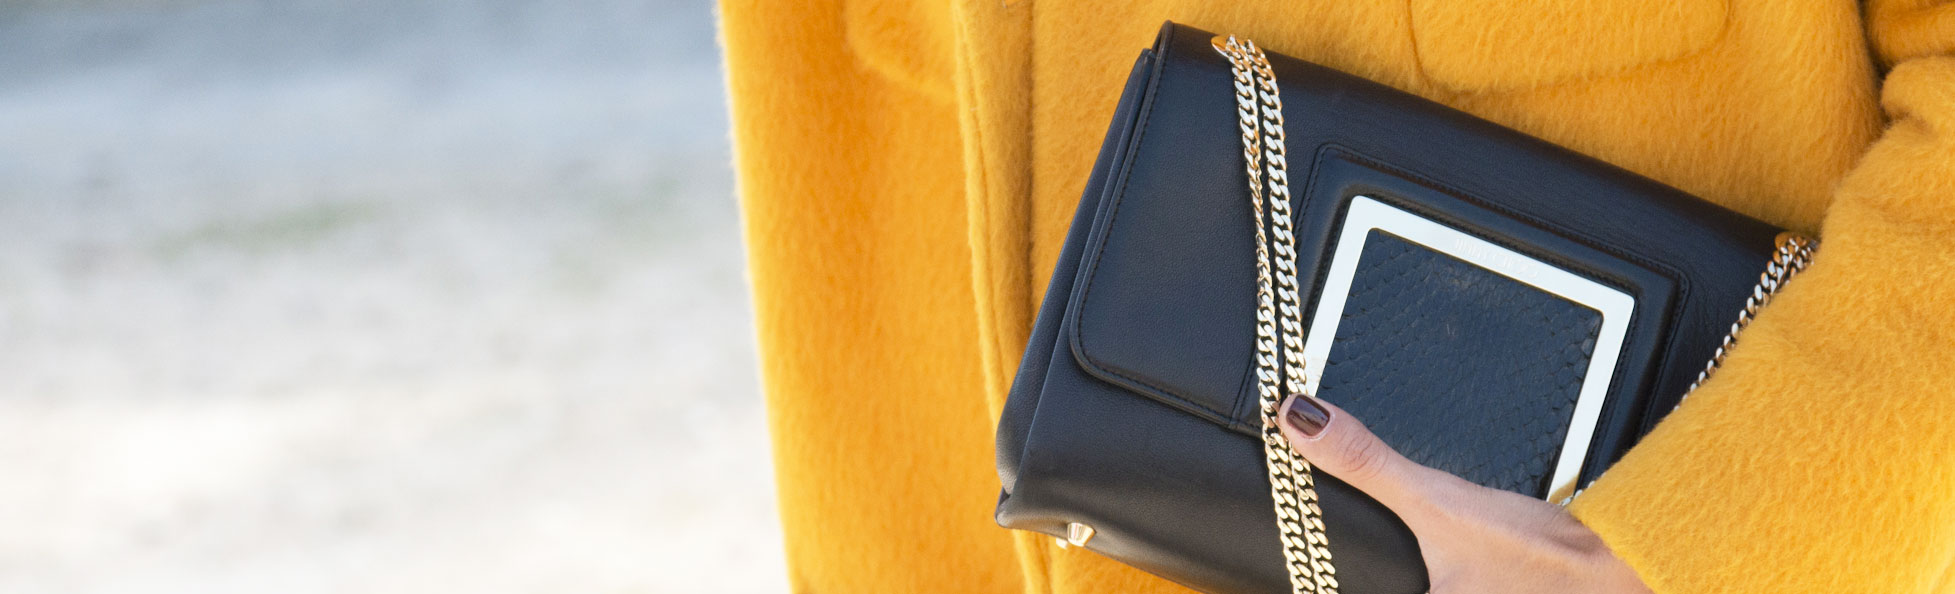 How to Buy a Handbag for a Woman - Bloomberg 6b06cad680b66